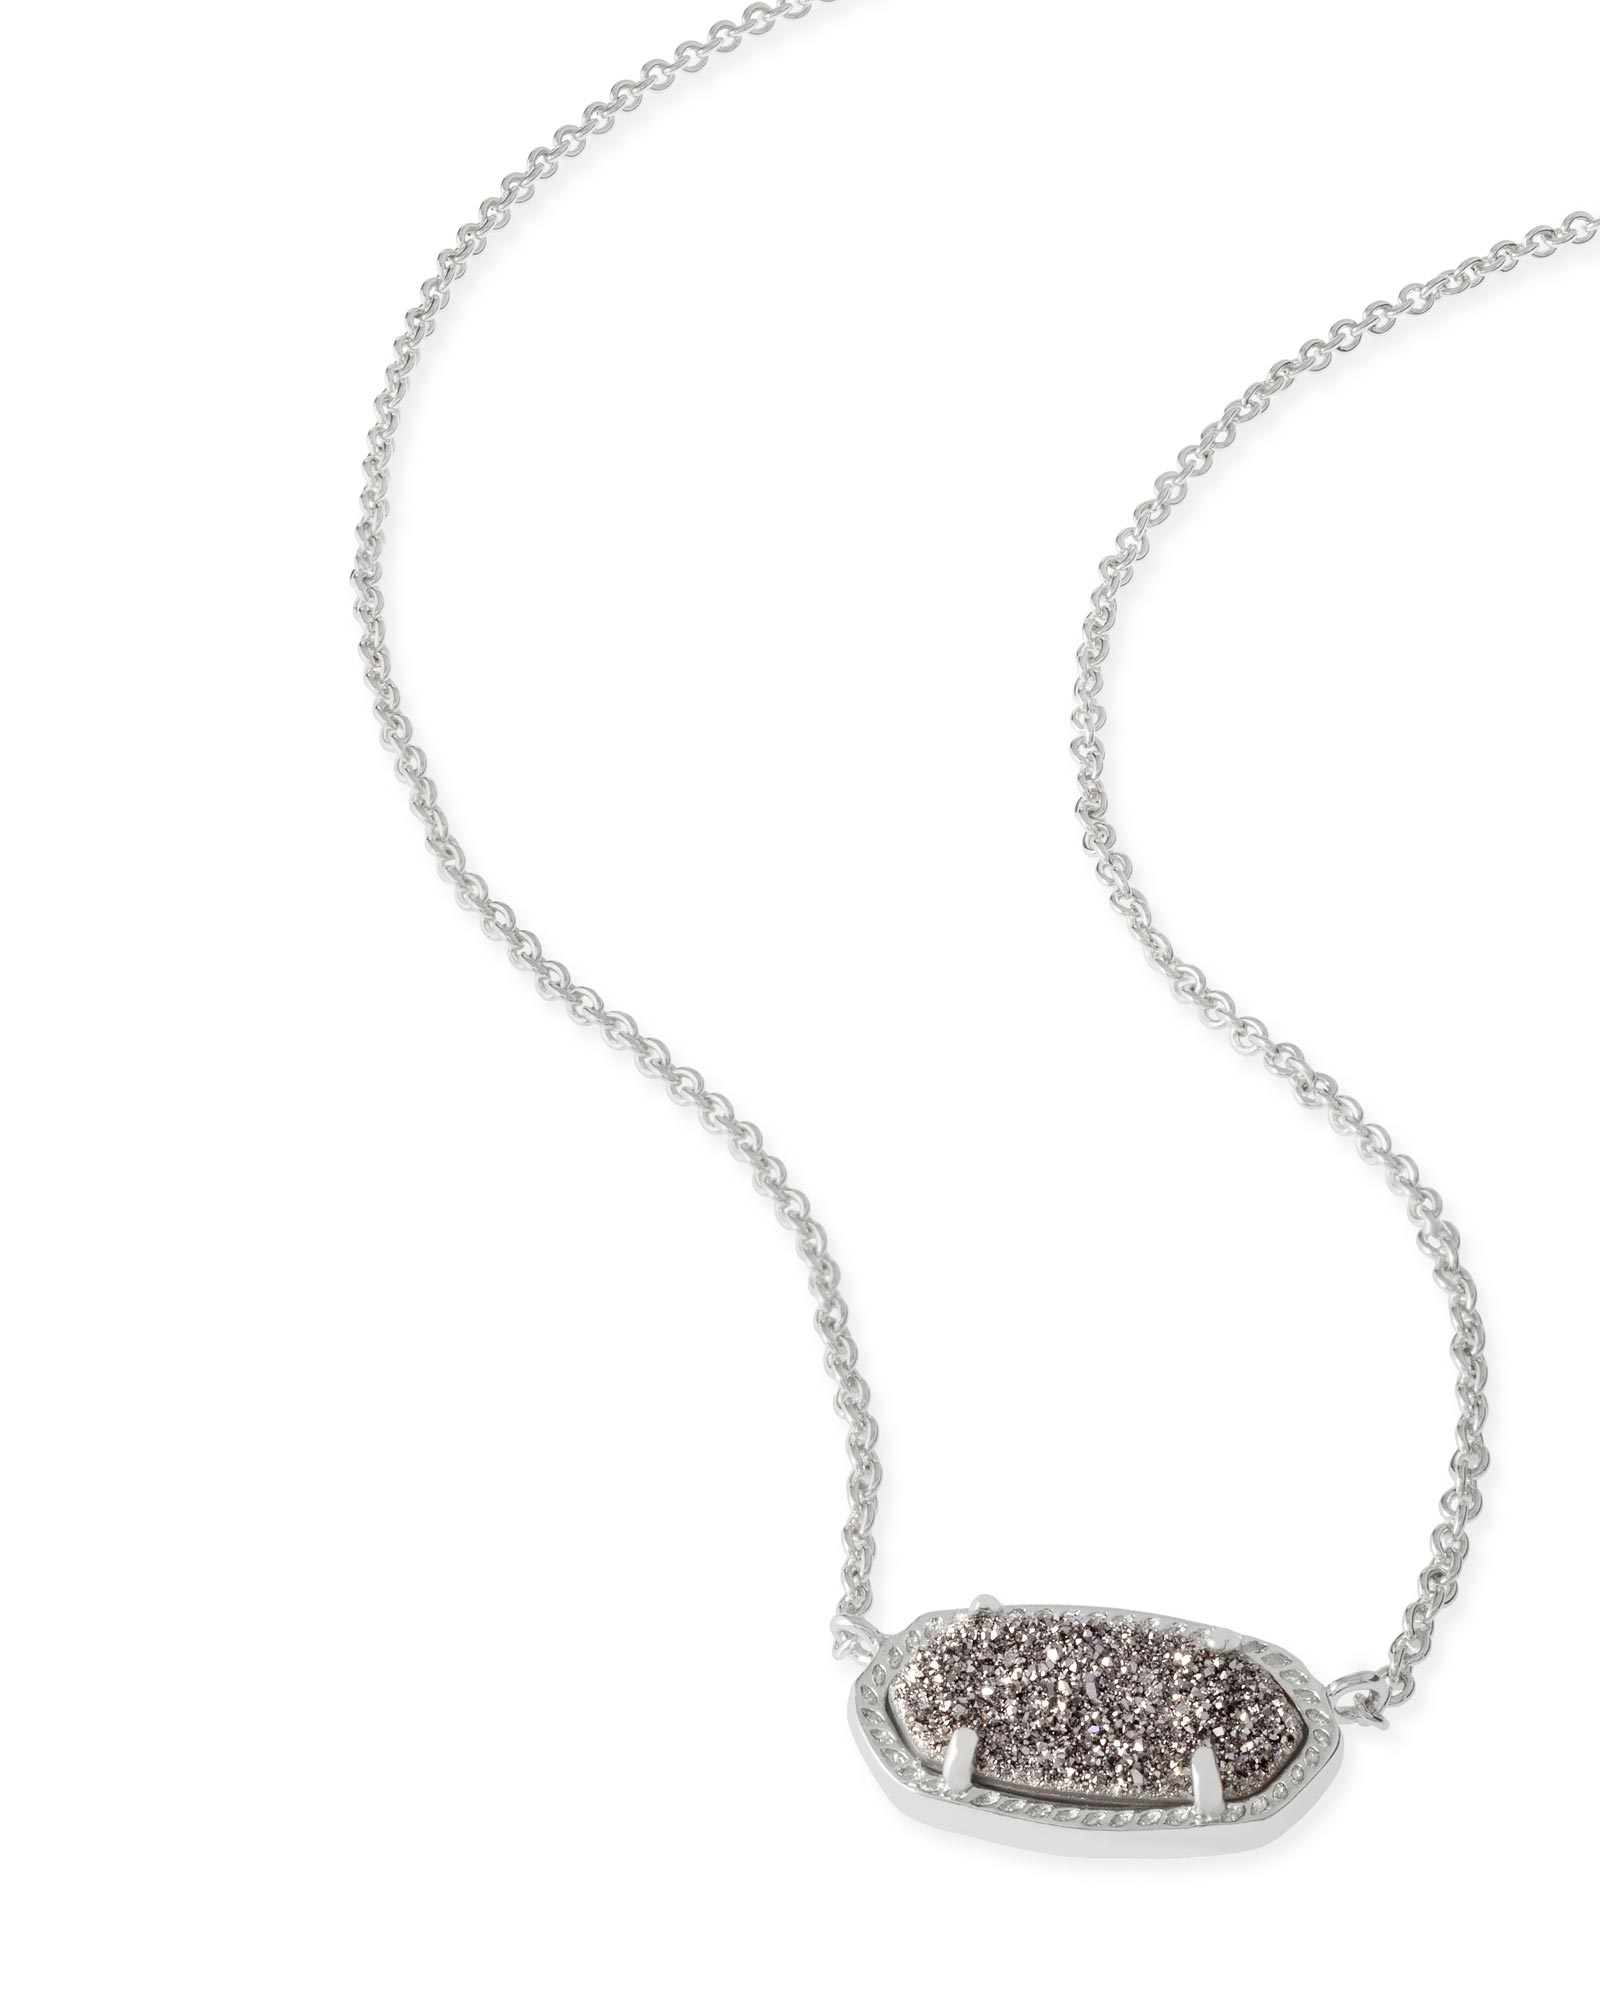 Elisa silver pendant necklace in platinum kendra scott elisa silver pendant necklace in platinum drusy aloadofball Images